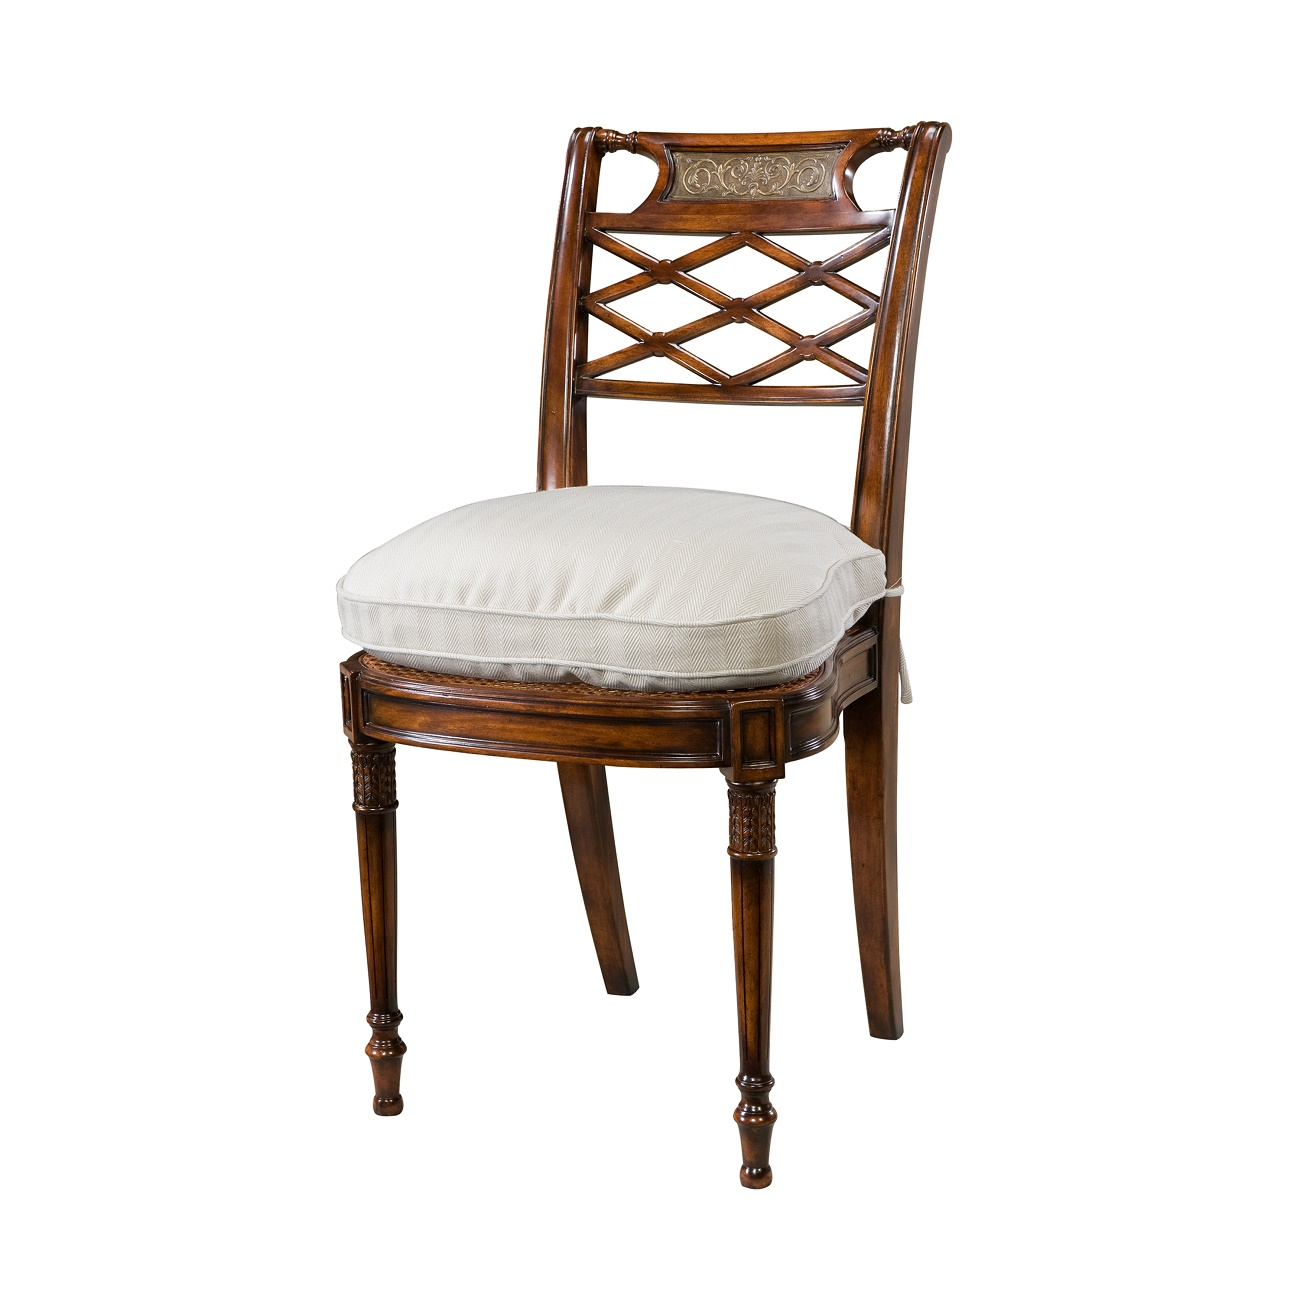 Theodore Alexander Adorned With Silk Bows Side Chairs on Sale Brooklyn - Accentuations Brand